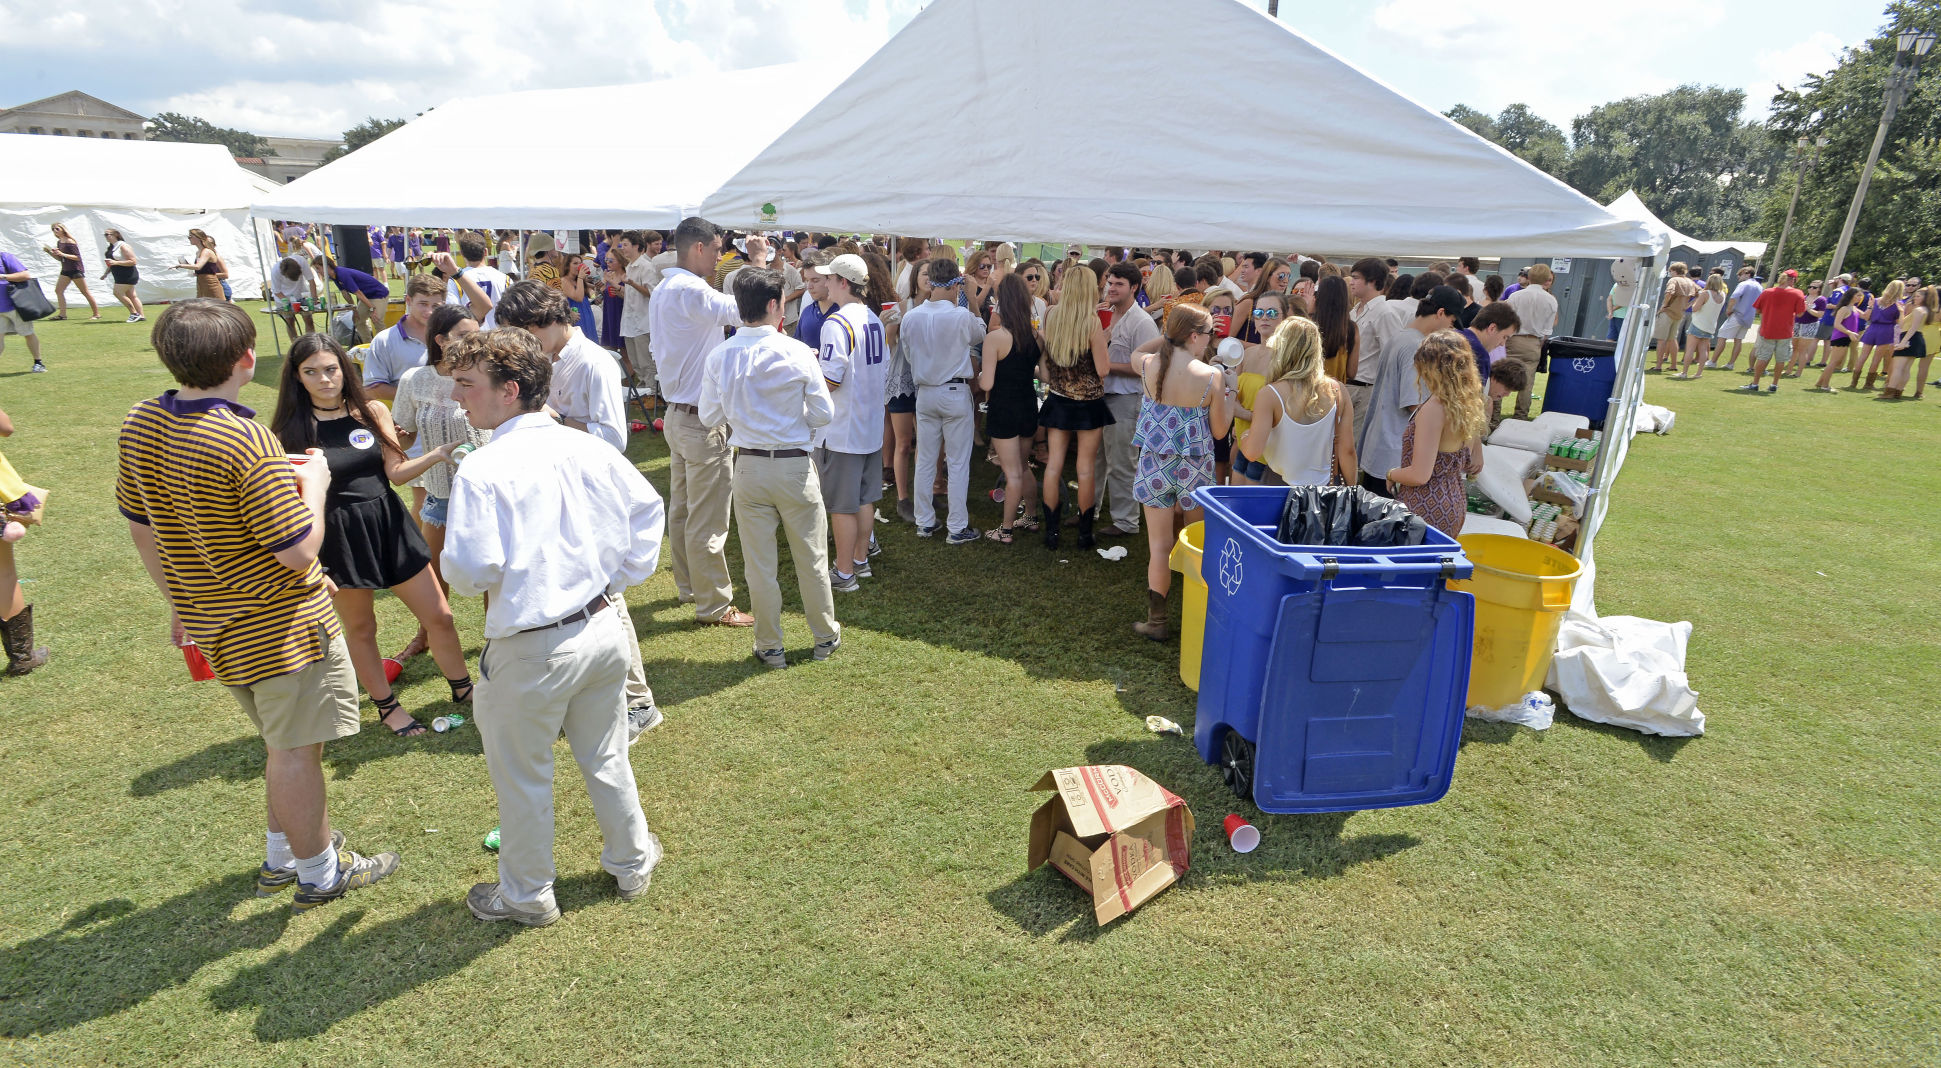 Check out new rules for LSU student groups tailgating at Parade Grounds & Check out new rules for LSU student groups tailgating at Parade ...